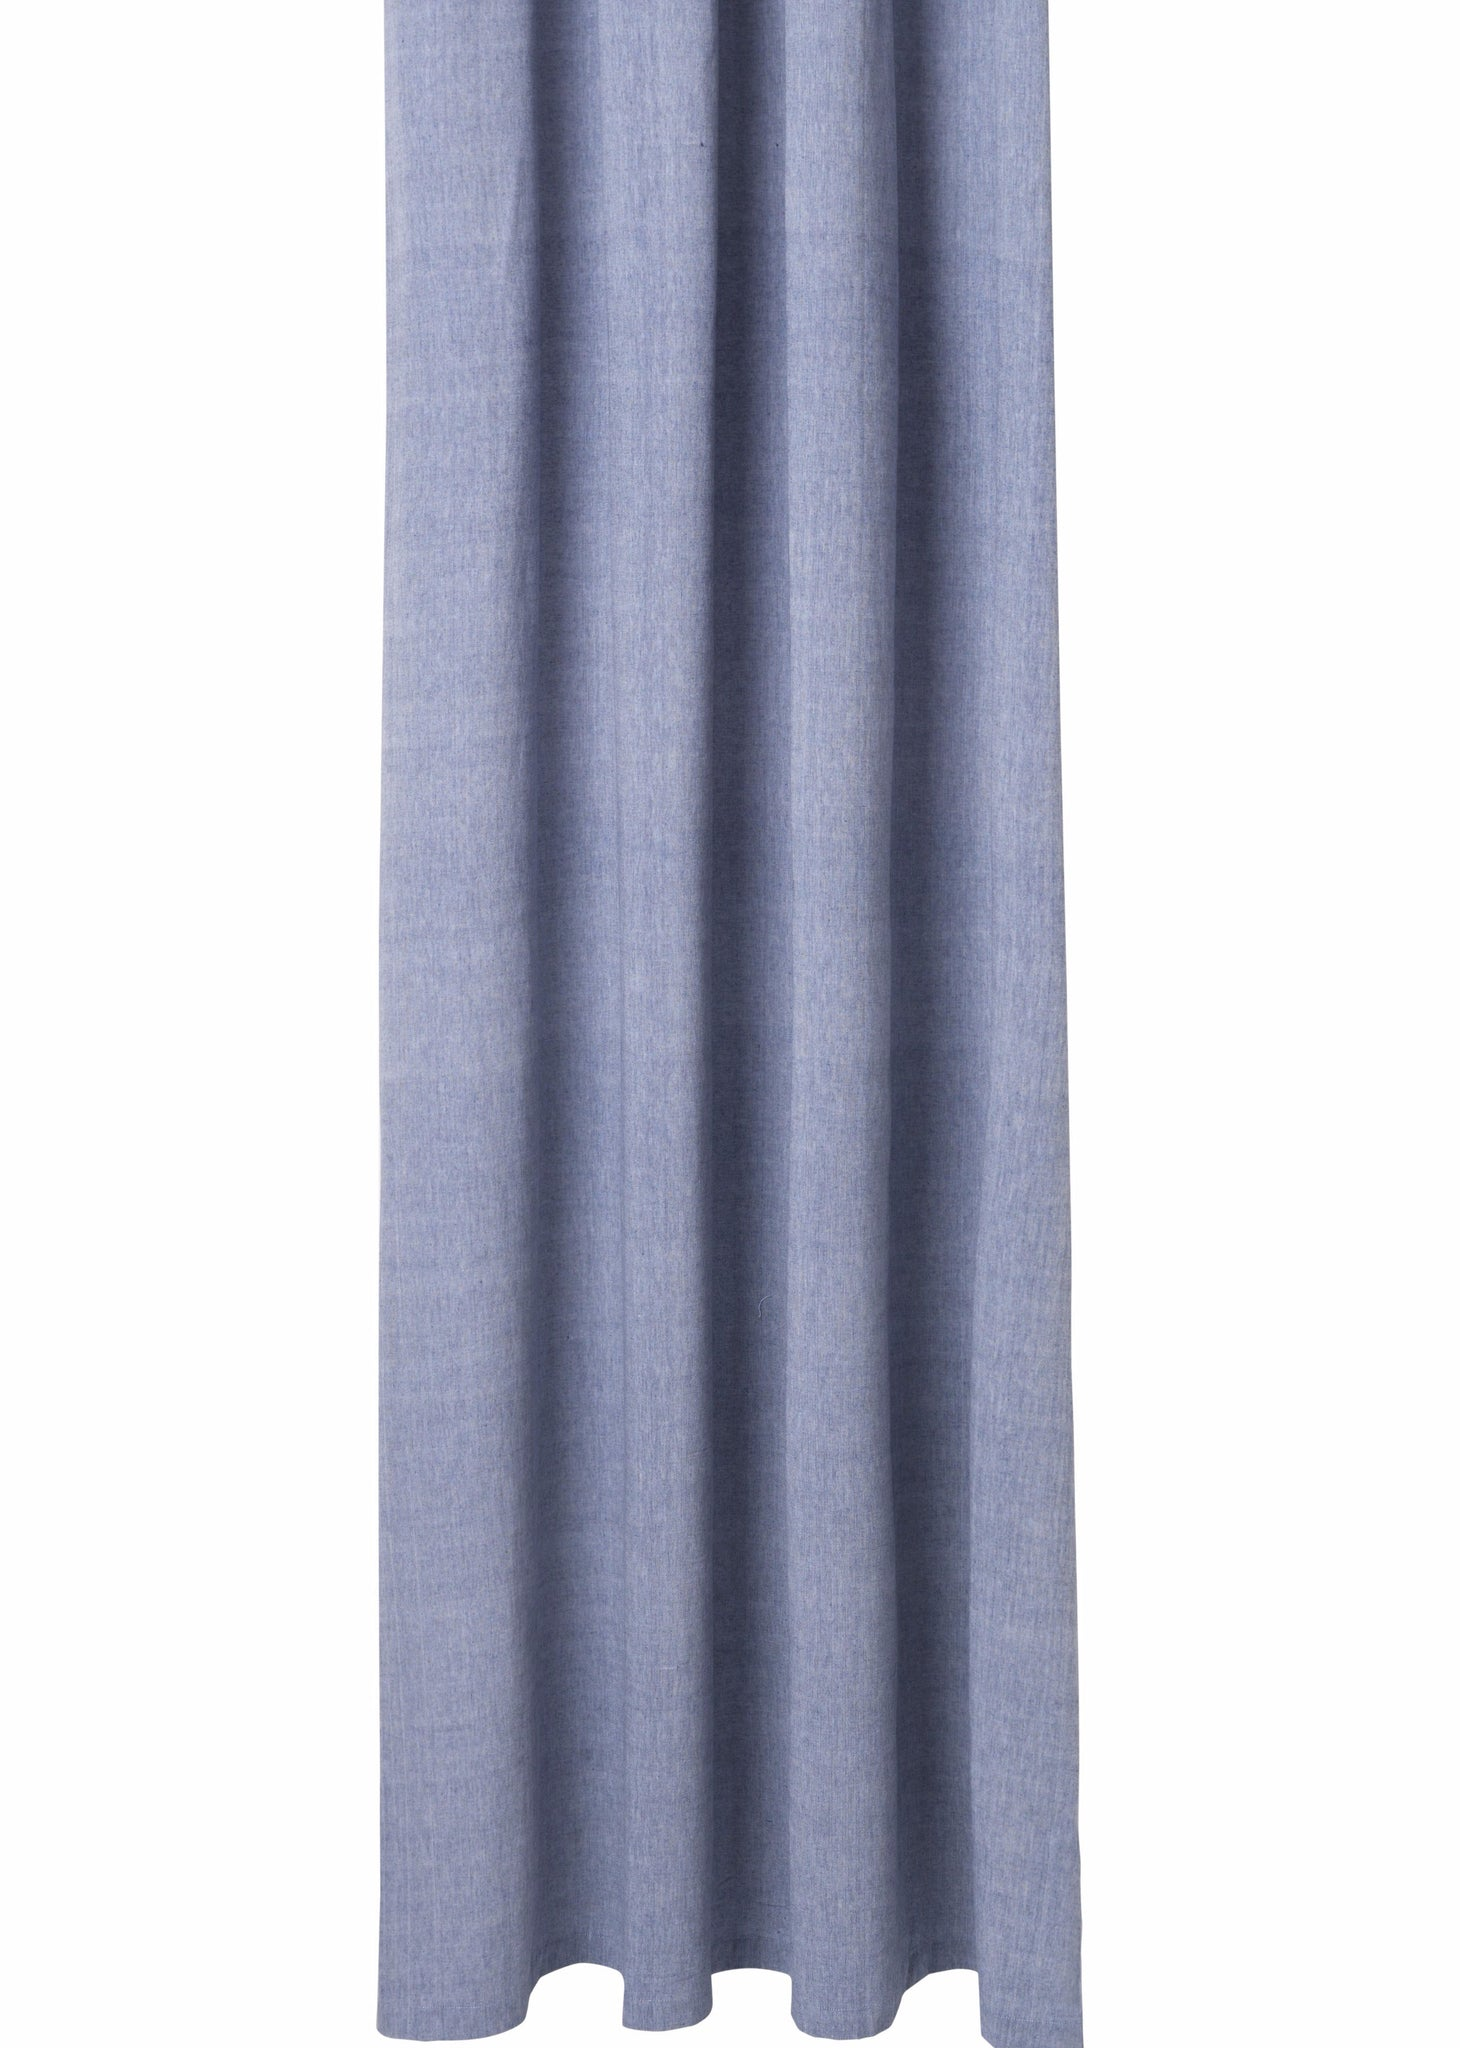 Chambray Shower Curtain in Blue design by Ferm Living – BURKE DECOR